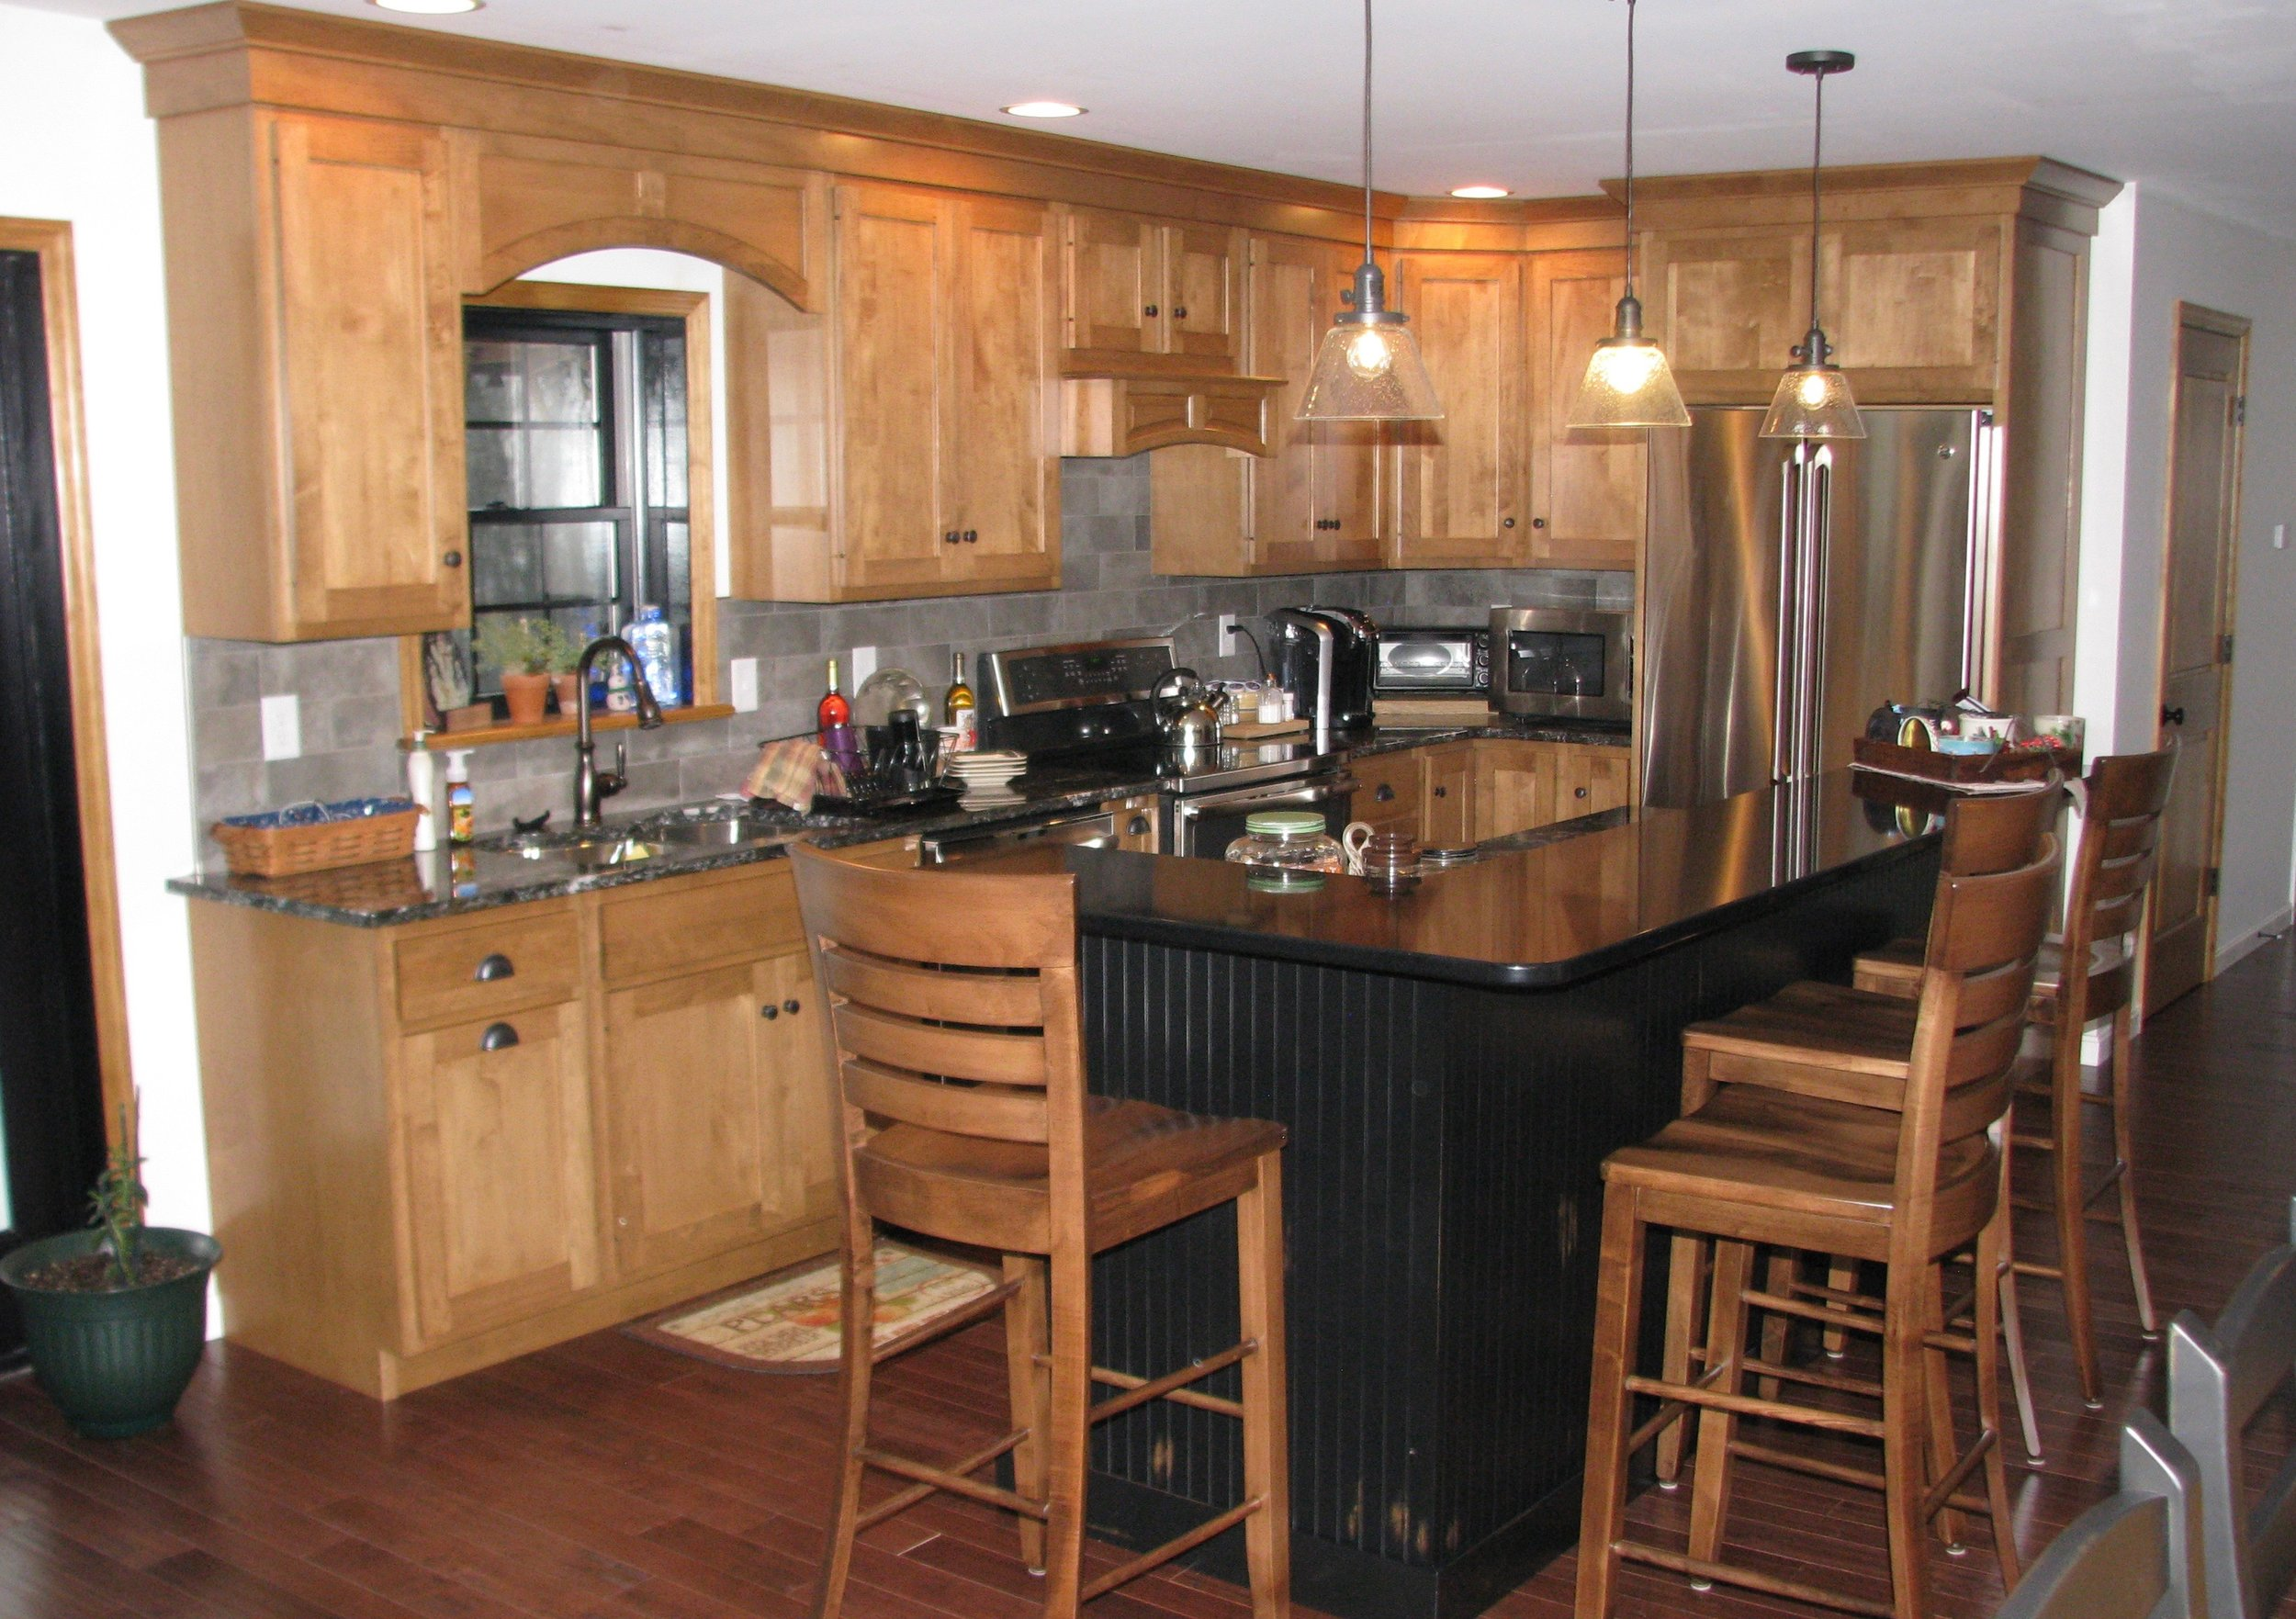 KITCHENS - Kitchen remodeling ranks amongst the most popular remodeling projects we perform each year.